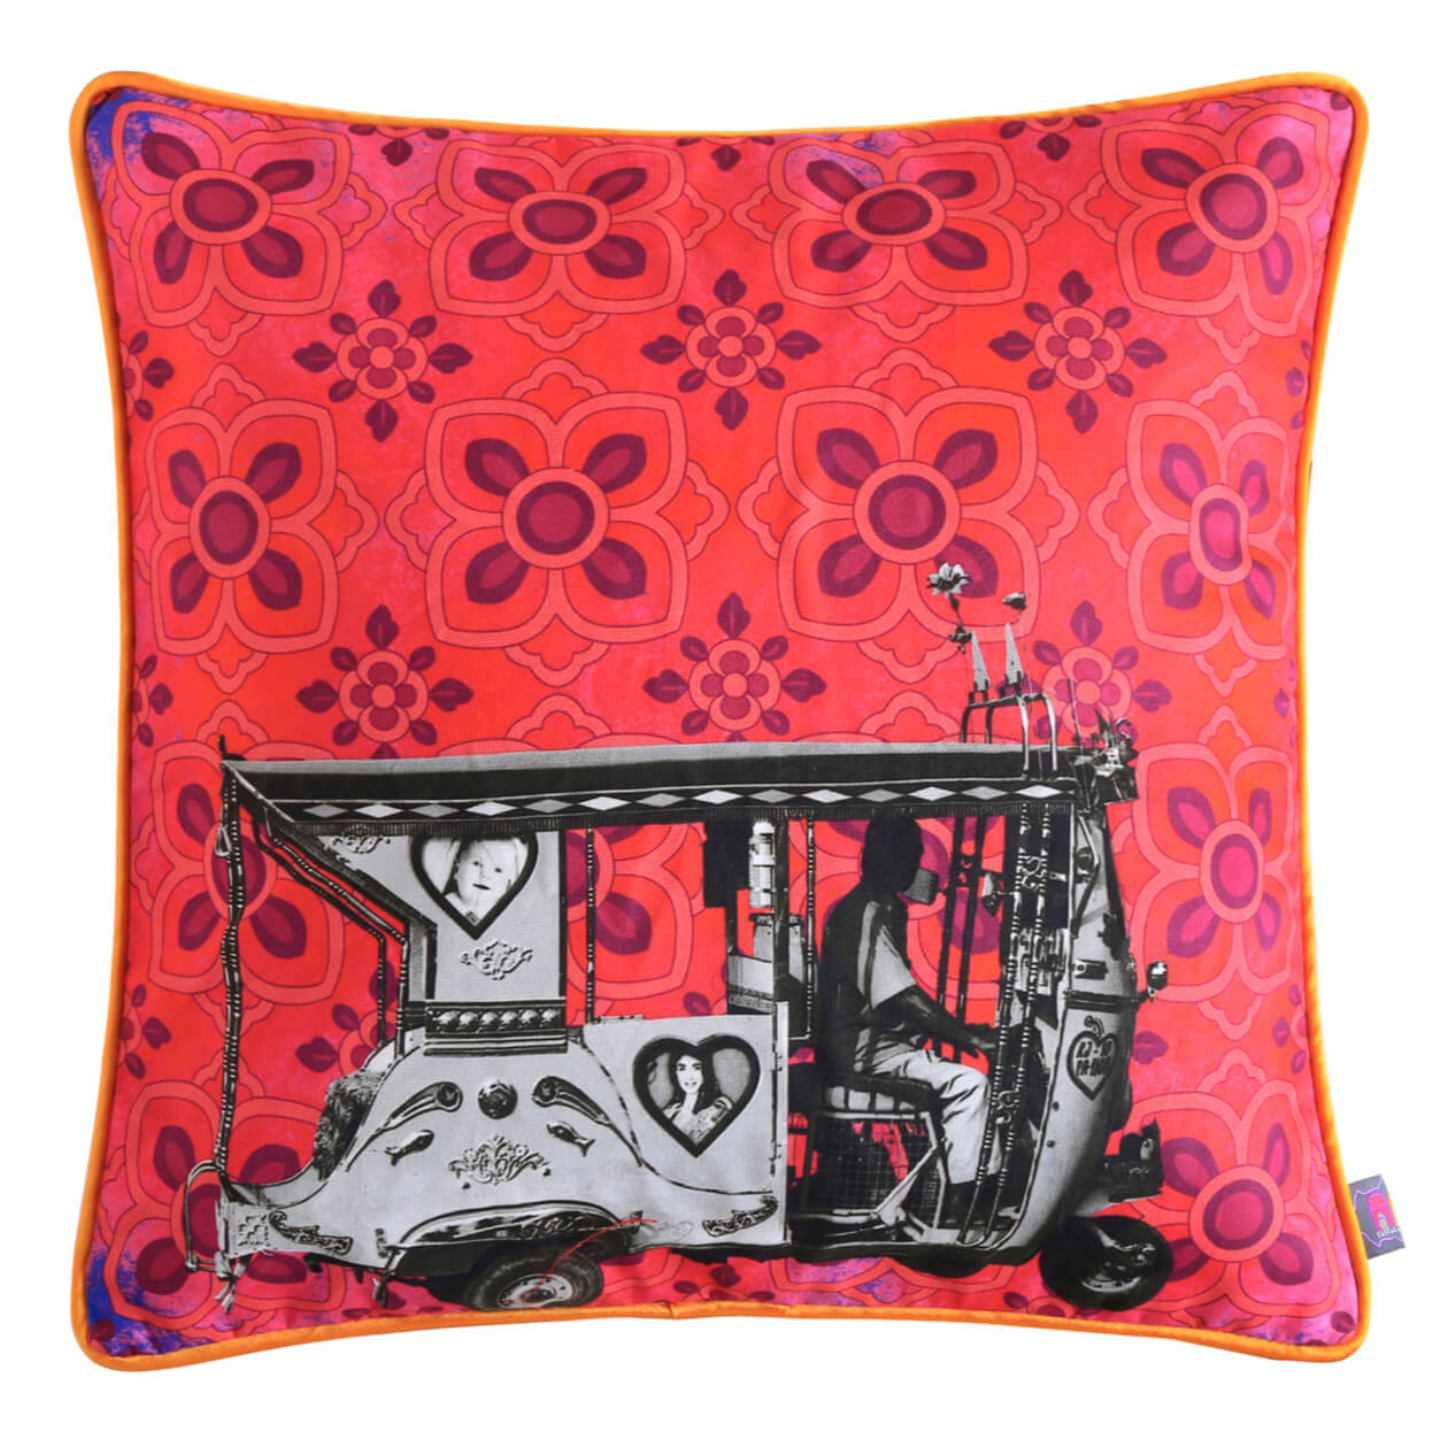 Silver Taxi  Glaze Cotton Cushion Cover 16x16 Inches